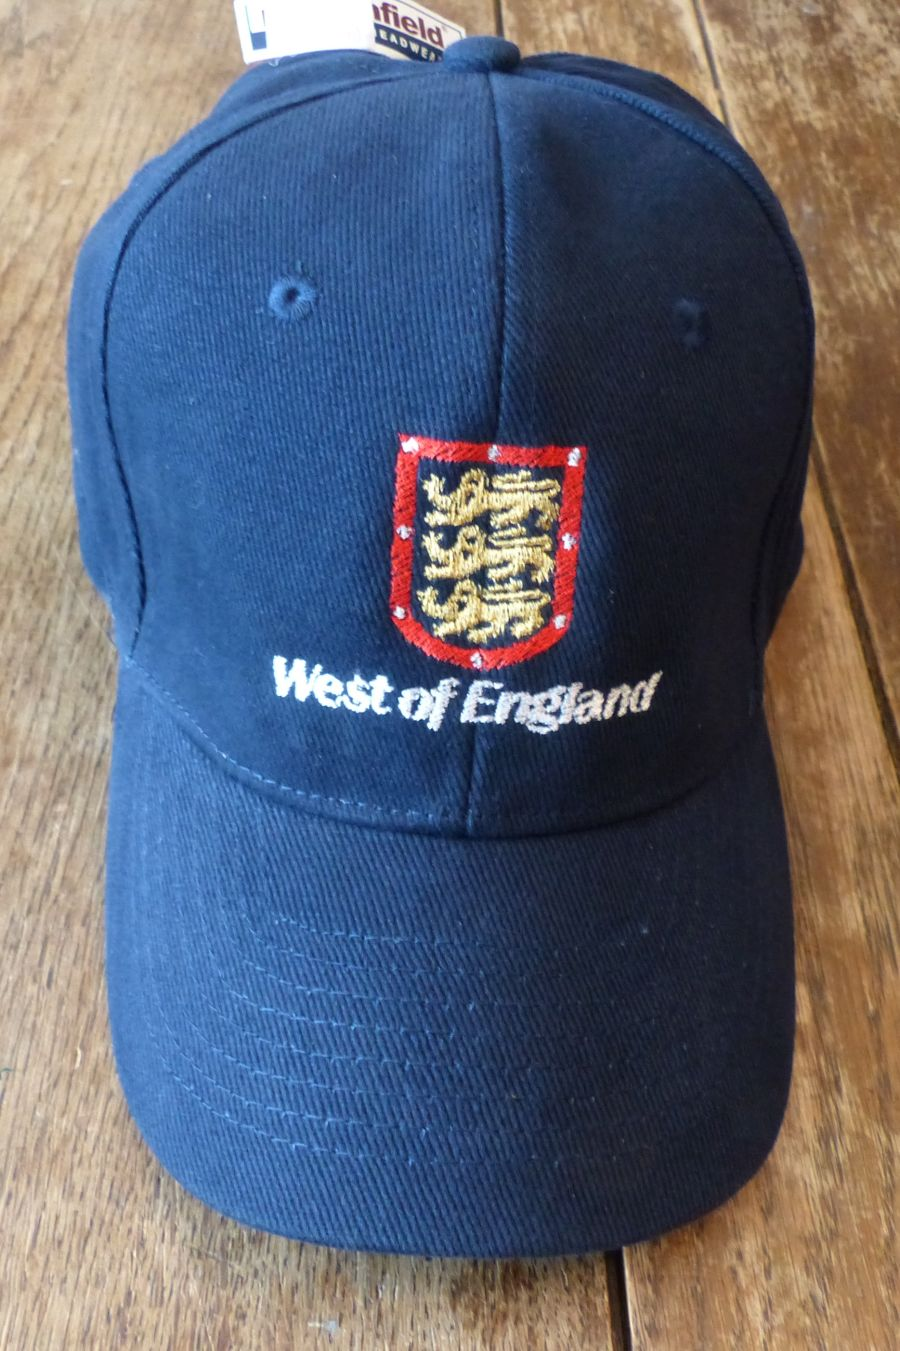 West of England Baseball Cap